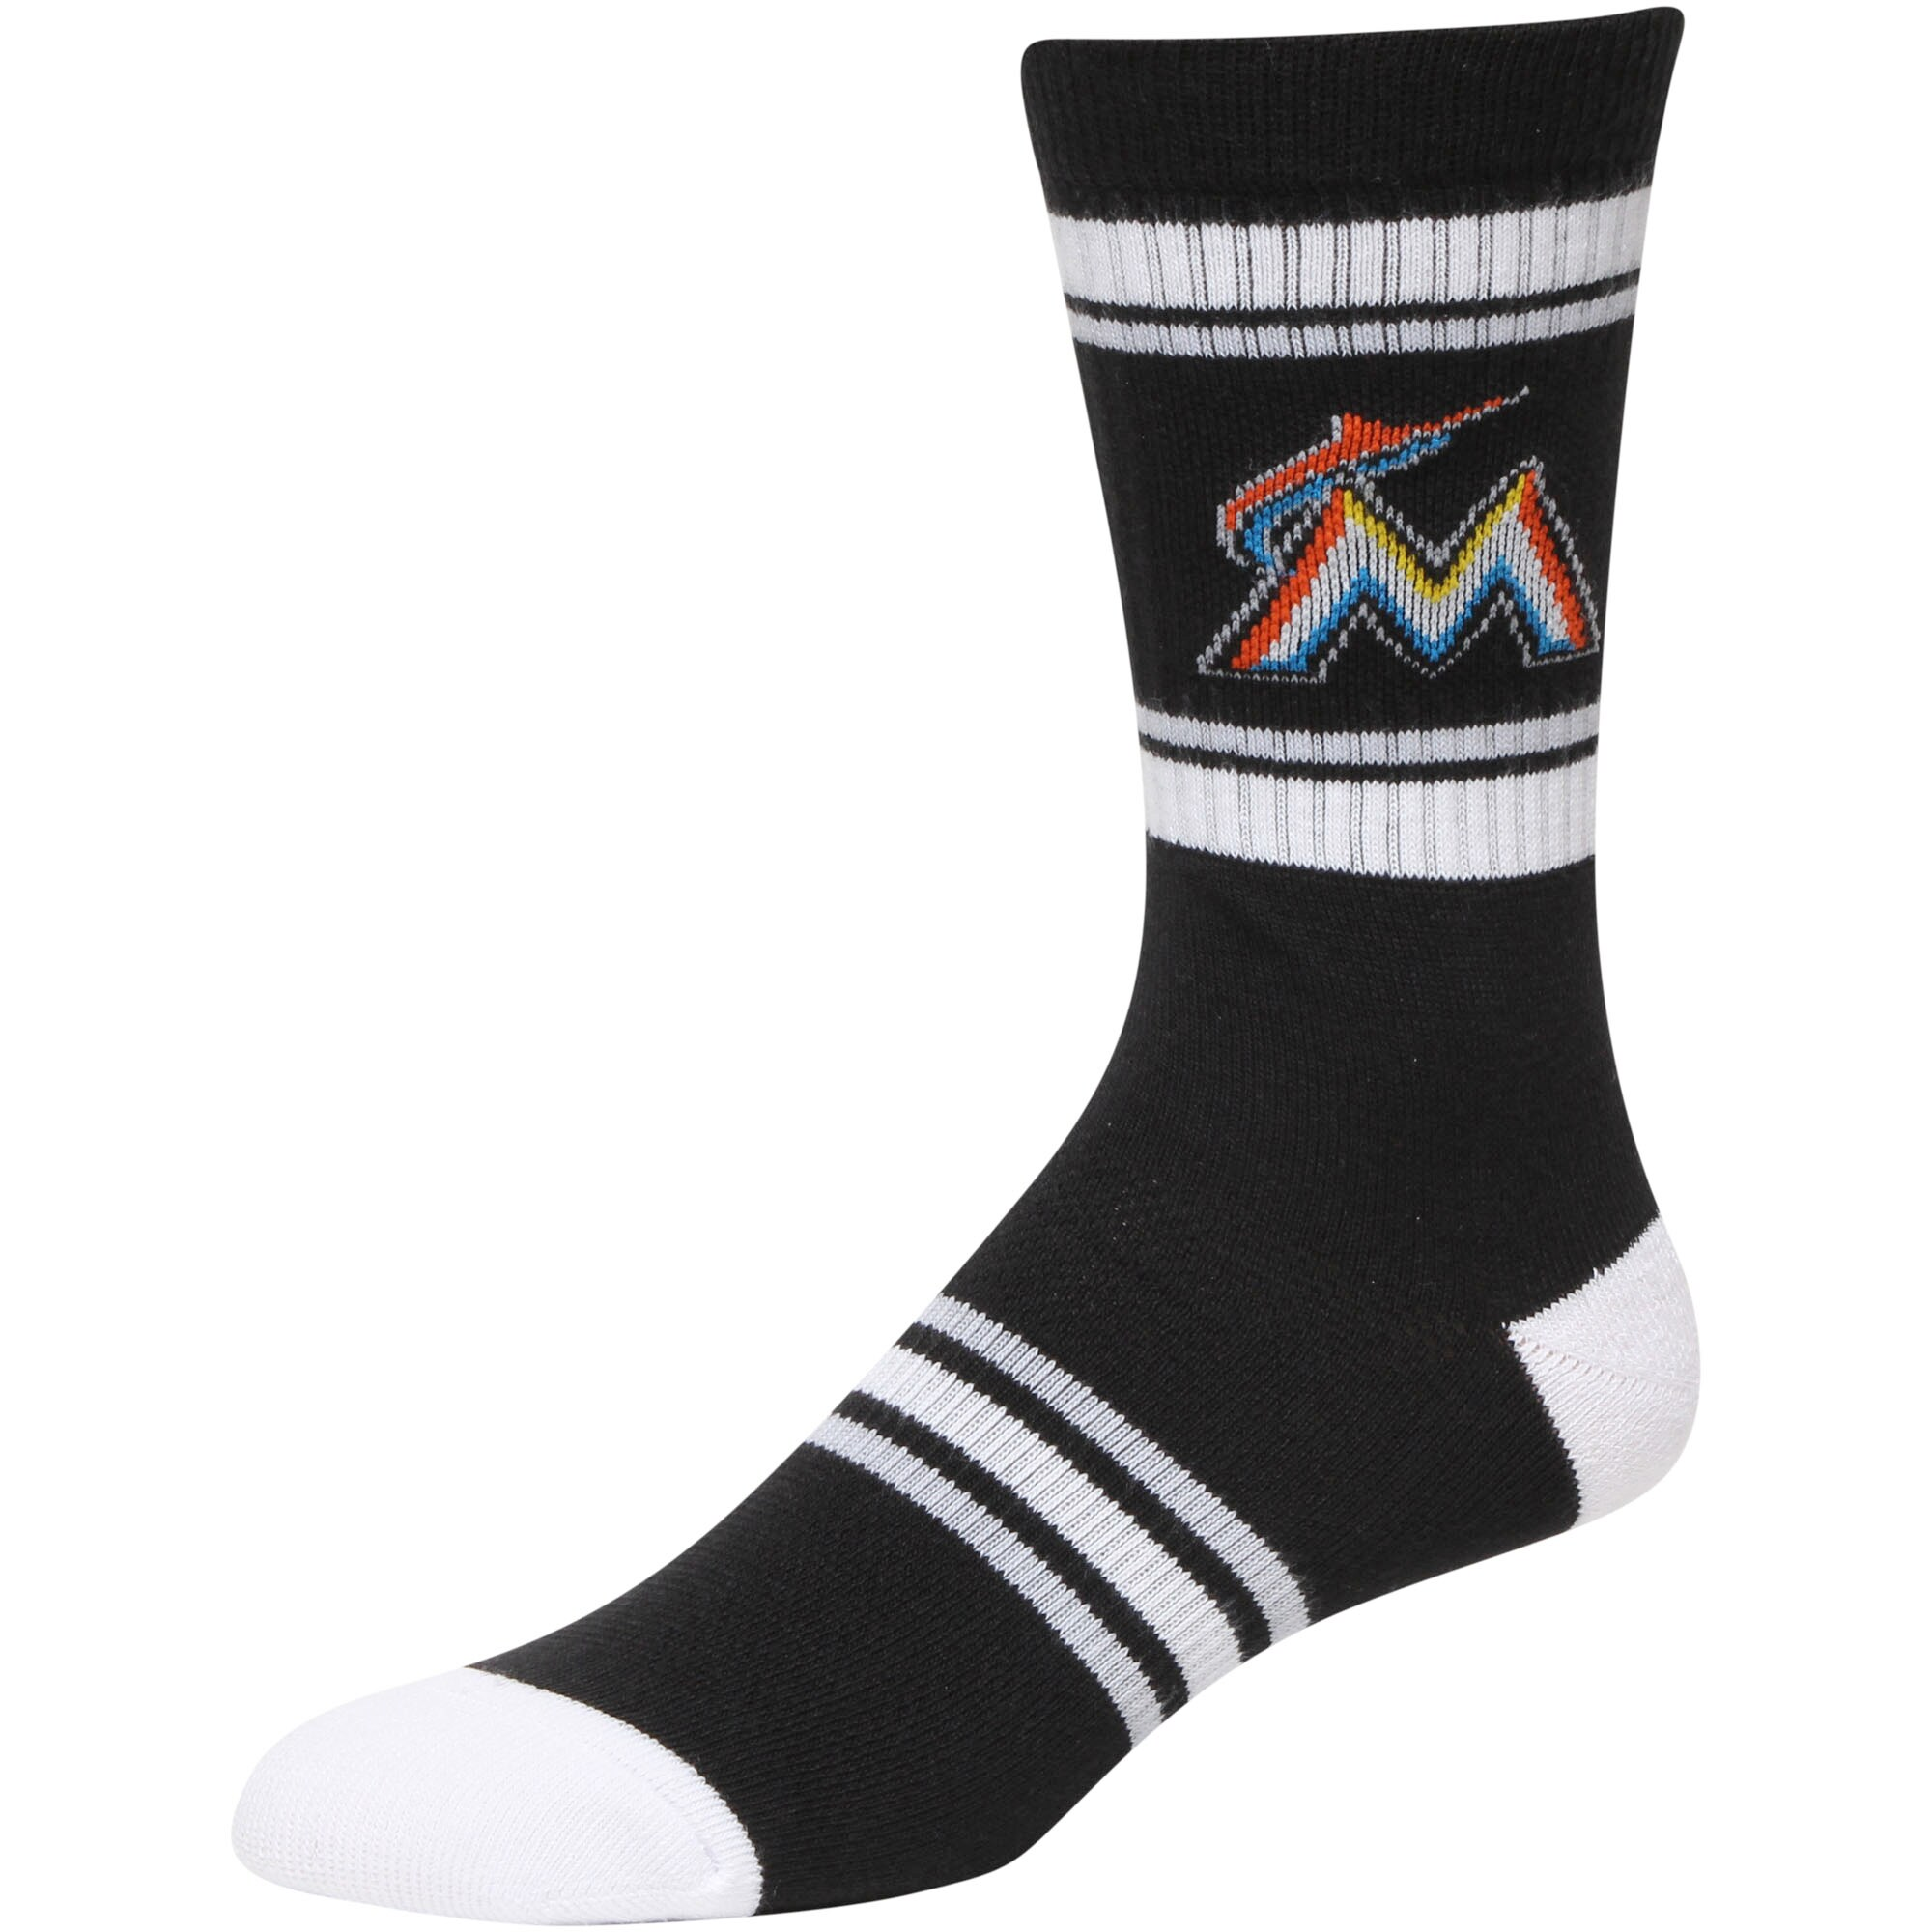 Miami Marlins Stripe Crew Socks - Black/White